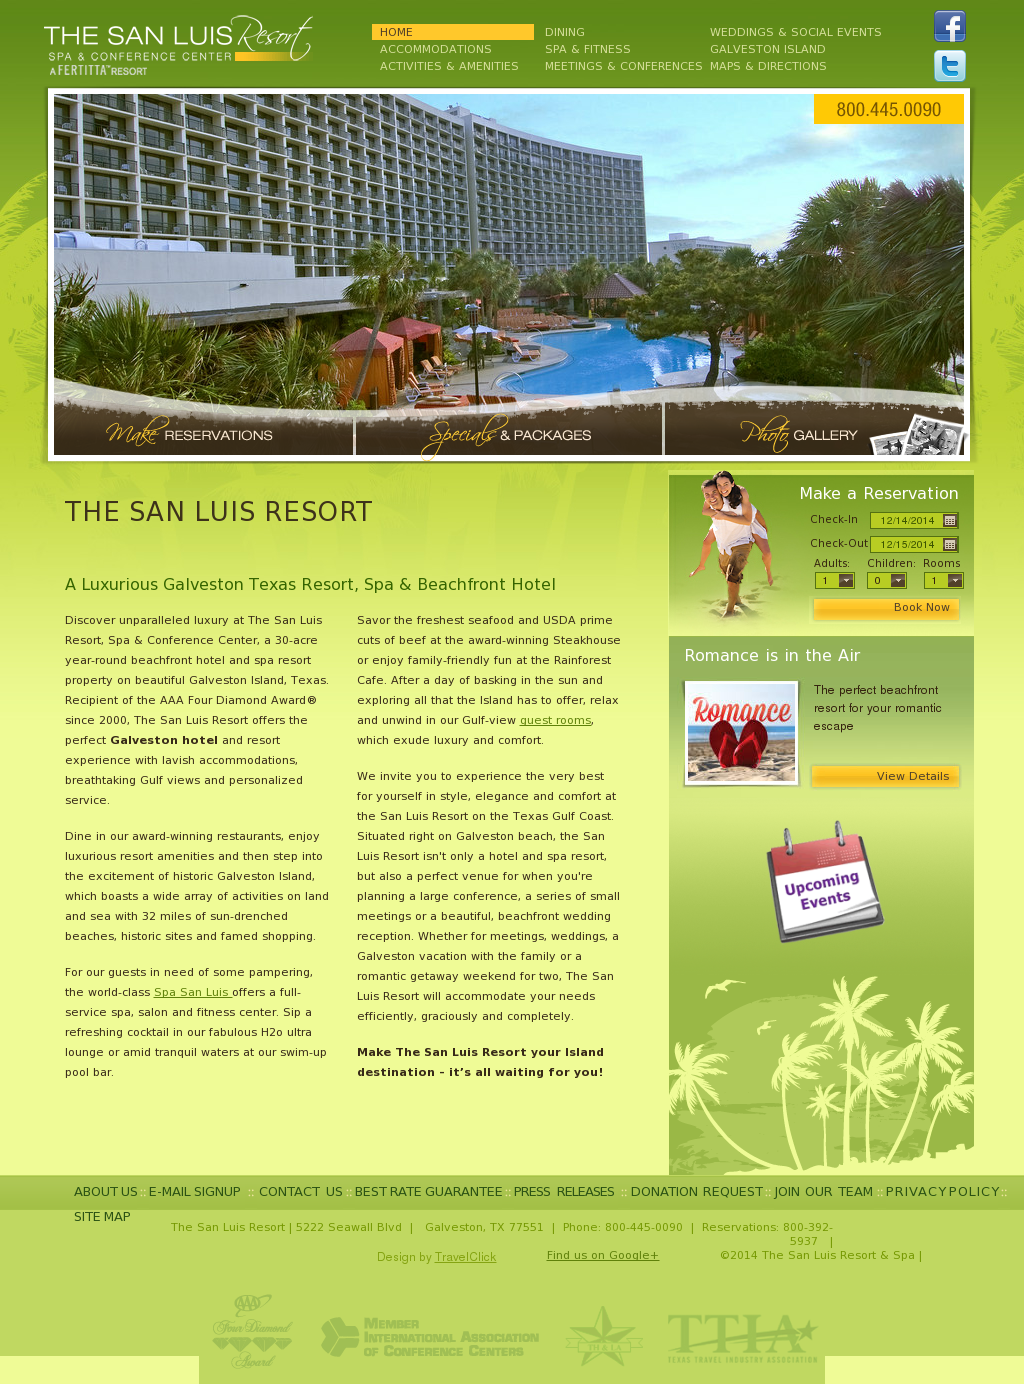 San Luis Resort Competitors, Revenue and Employees - Owler